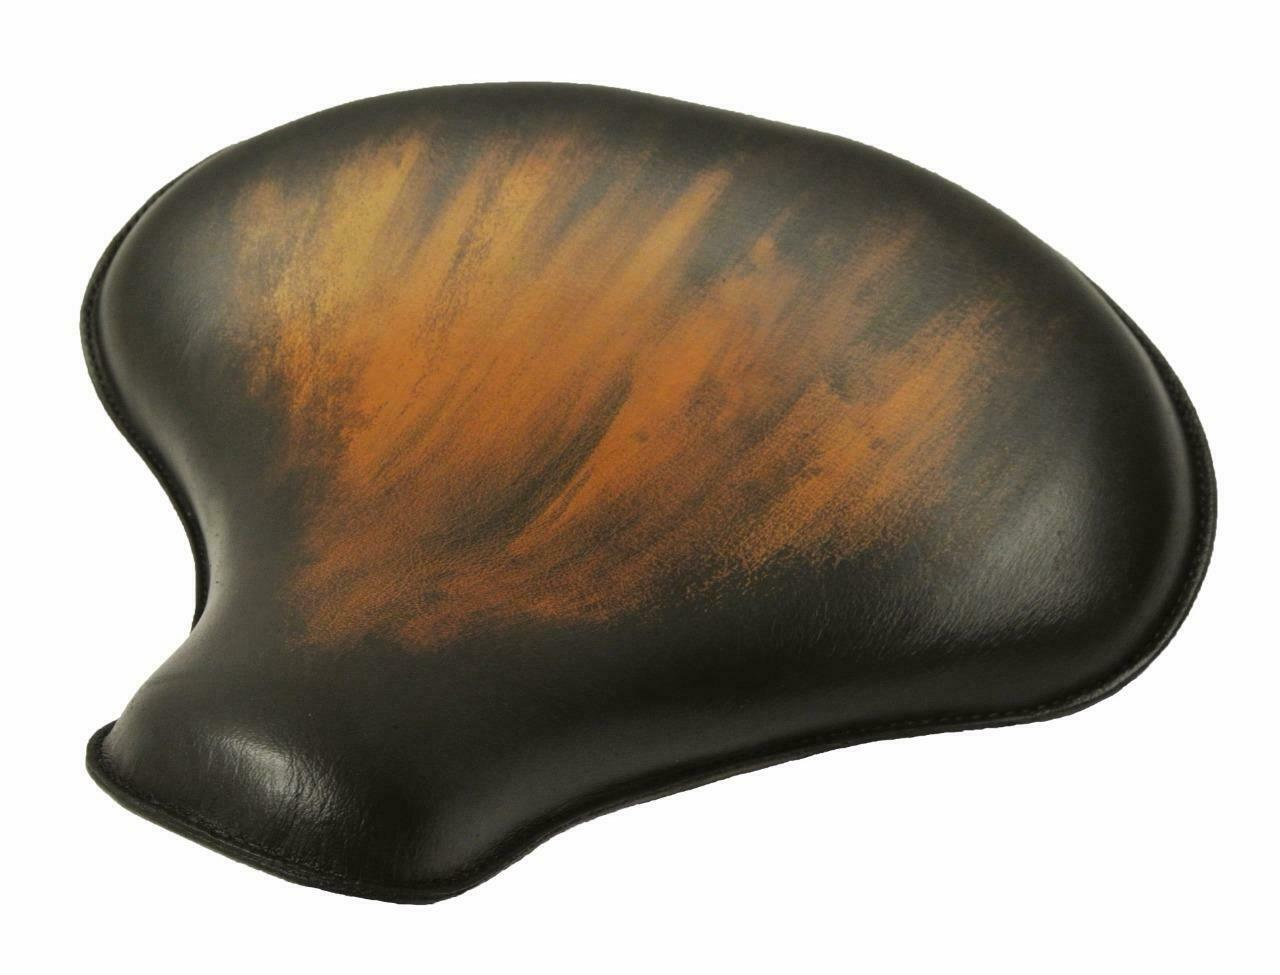 "2017-2020 Triumph Bobber 15x14"" Antique Brown Leather Solo Tractor Seat - Mother Road Customs"